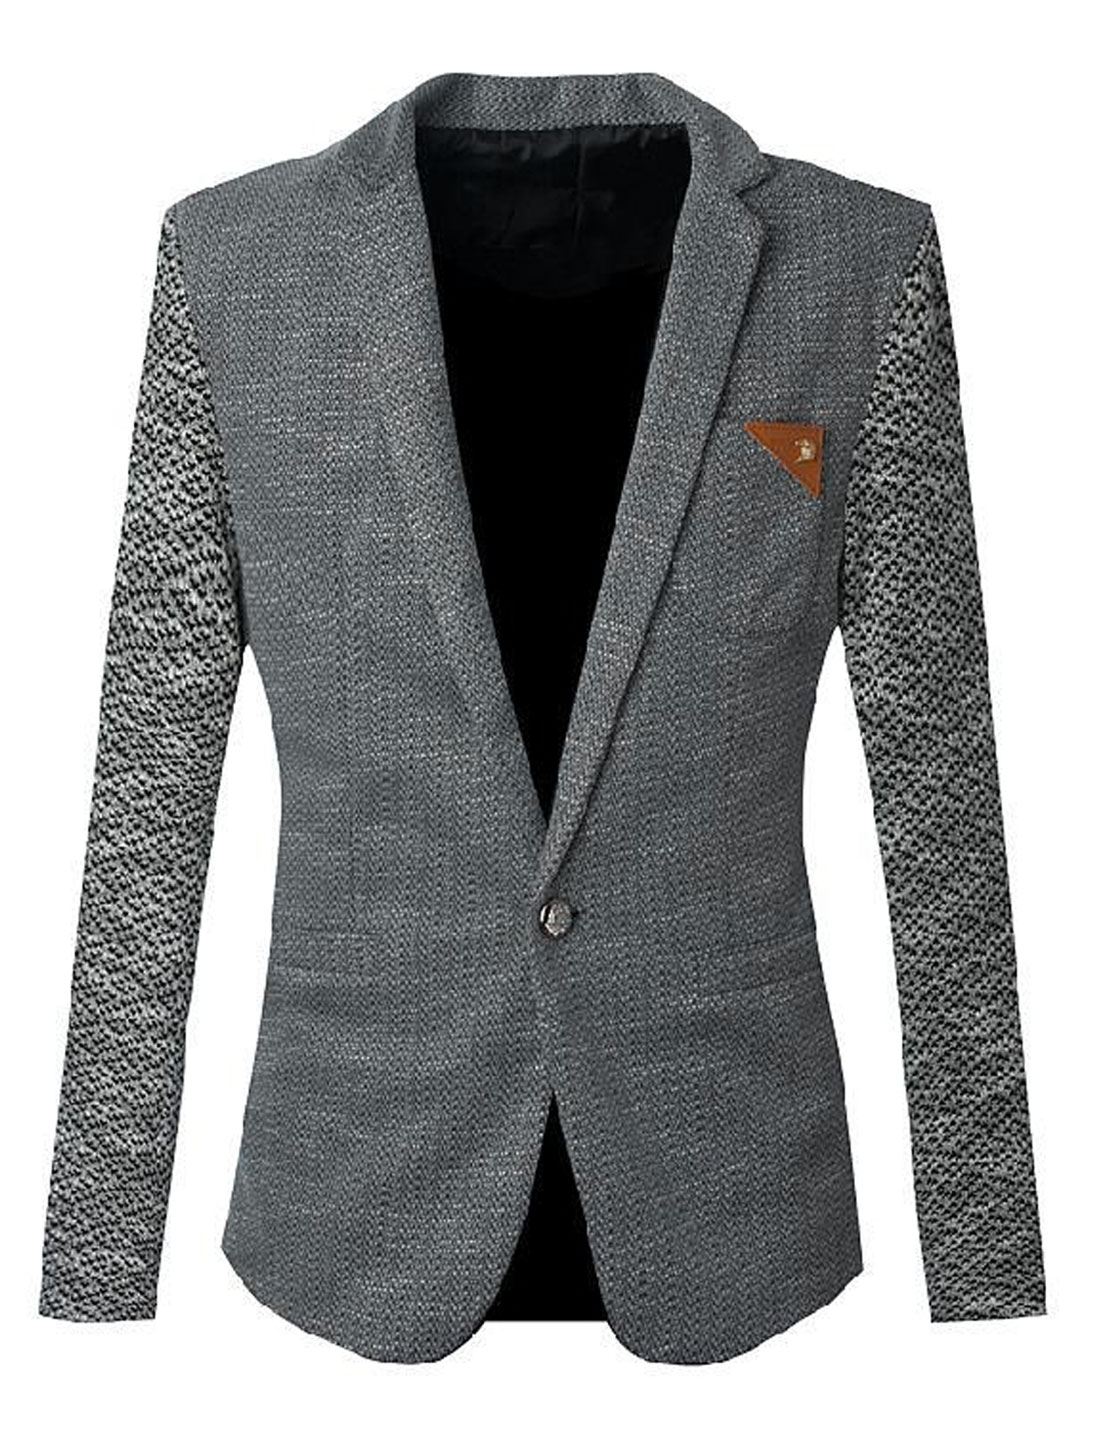 Men Notched Lapel Long Sleeve Premium Blazer Jacket Dark Gray S